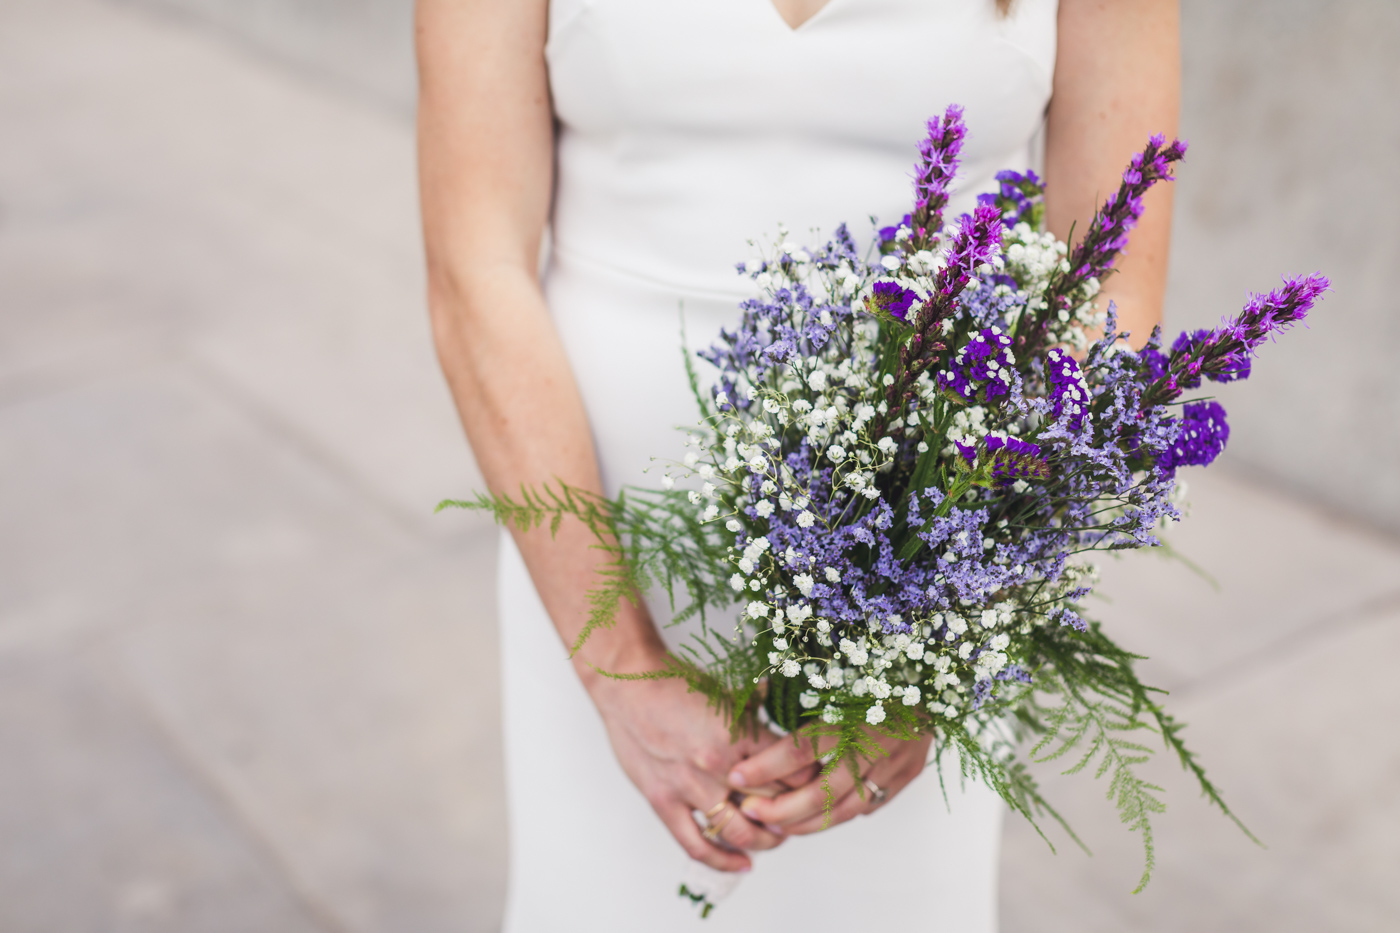 aaron-kes-photography-bride-and-bouquet